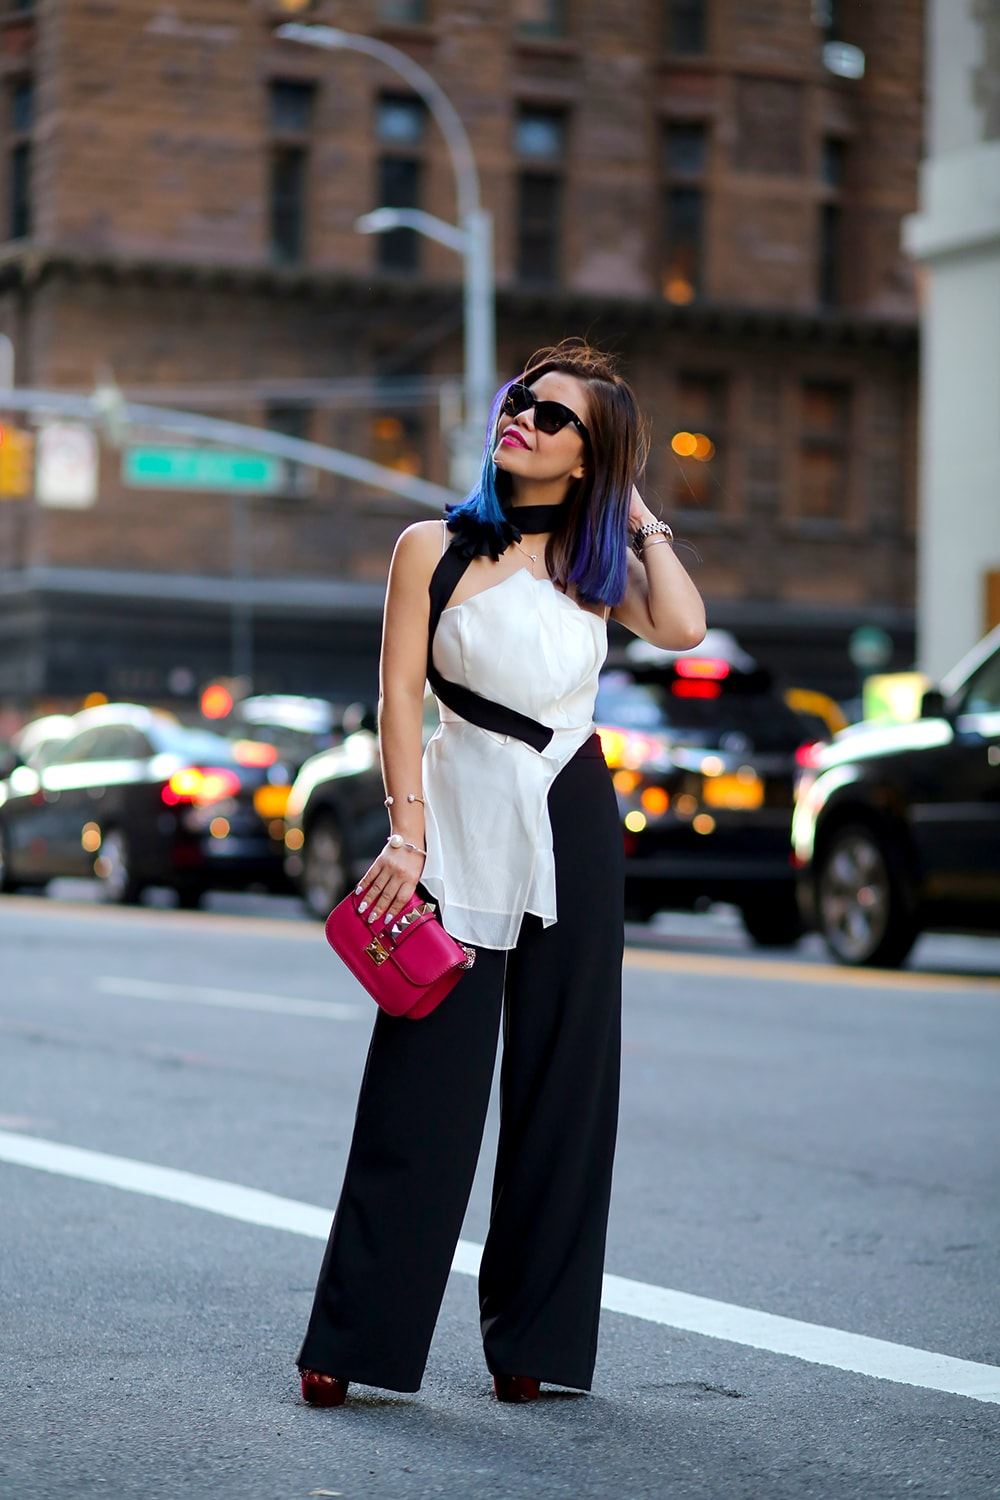 Crystal-Phuong--New-York-Fashion-Week-2016--Streetstyle-day-5